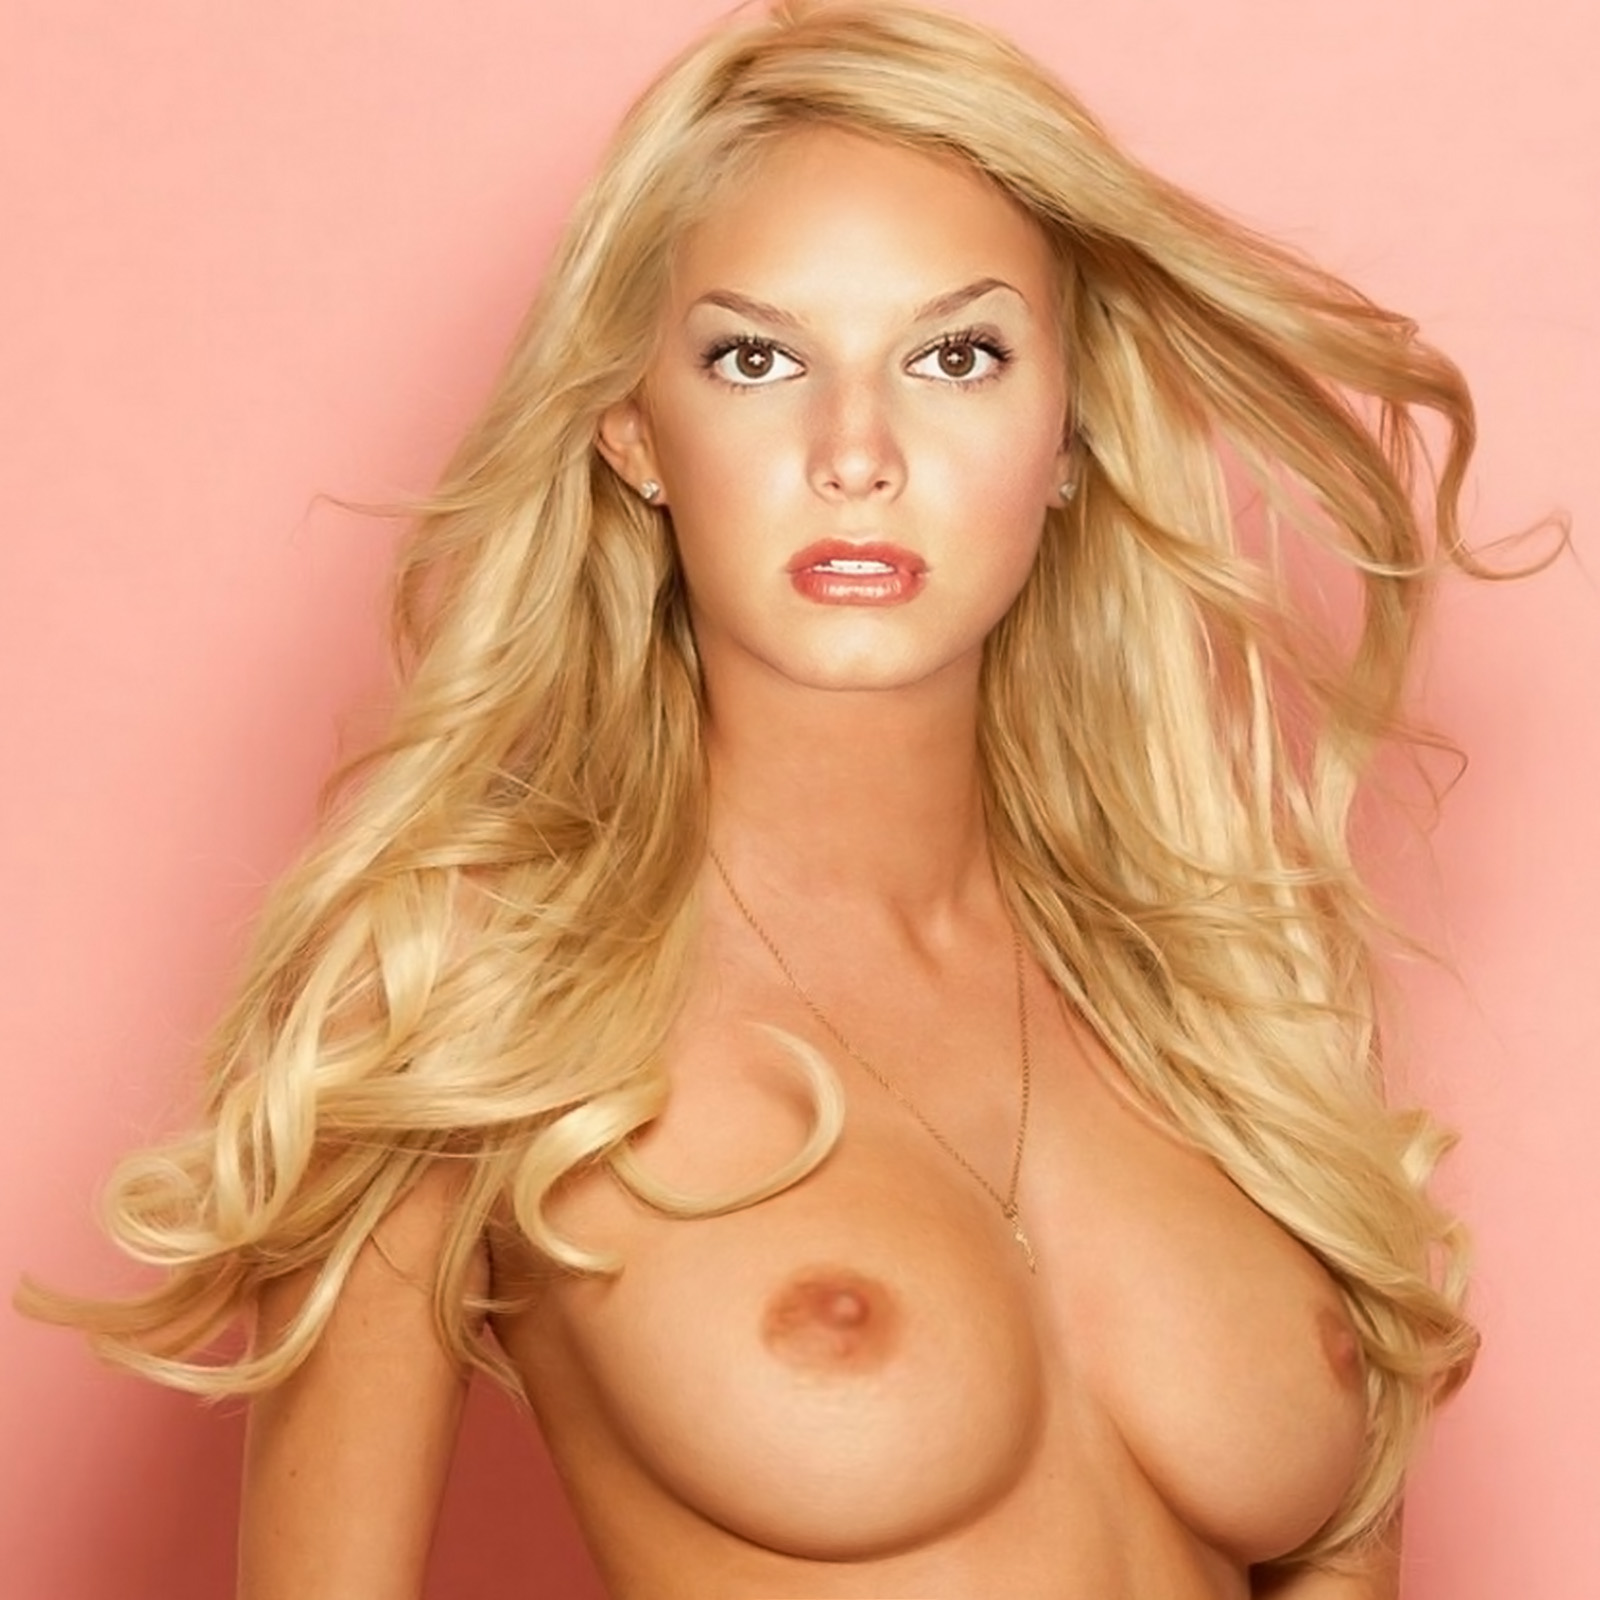 JessicaSimpsonNudeToplessNakedBoobs jessica simpson nude boobs naked boobs without write protection